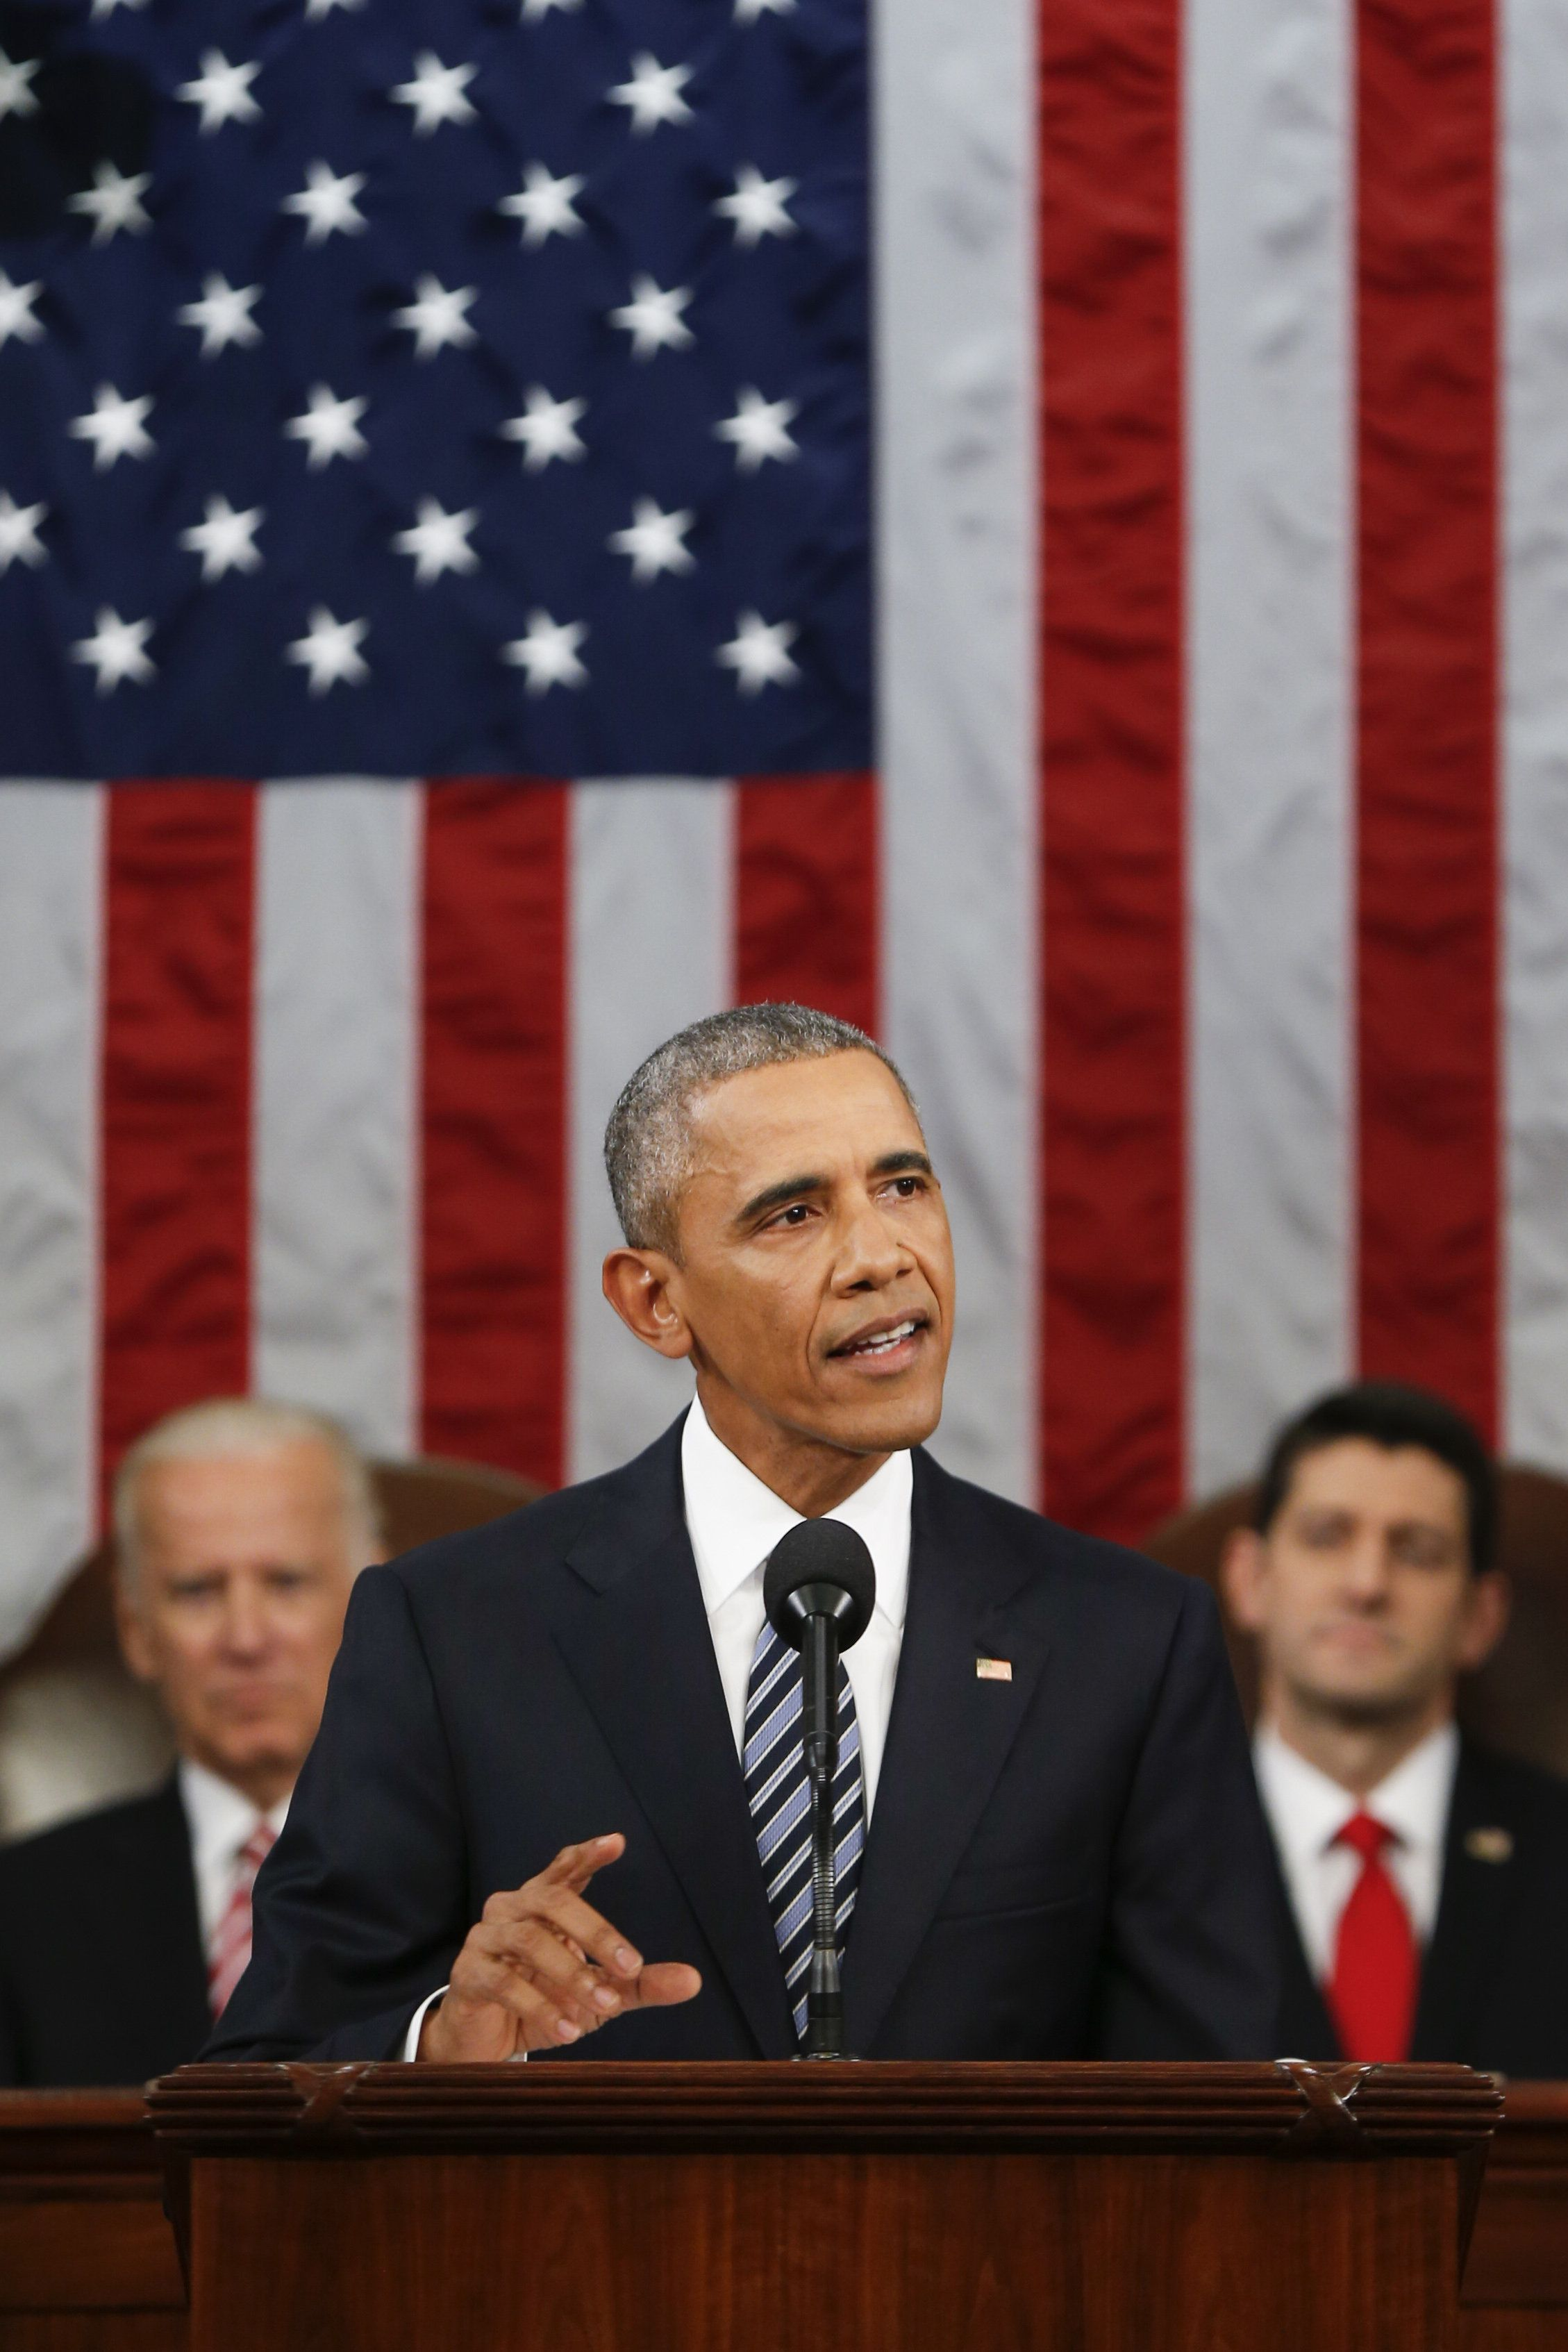 U.S. President Barack Obama delivers the State of the Union address to a joint session of Congress at the Capitol in Washington, D.C., U.S., on Tuesday, Jan. 12, 2016. Obama said he regrets that political divisiveness in the U.S. grew during his seven years in the White House and he plans to use his final State of the Union address Tuesday night to call for the nation to unite. Photographer: Evan Vucci/Pool via Bloomberg